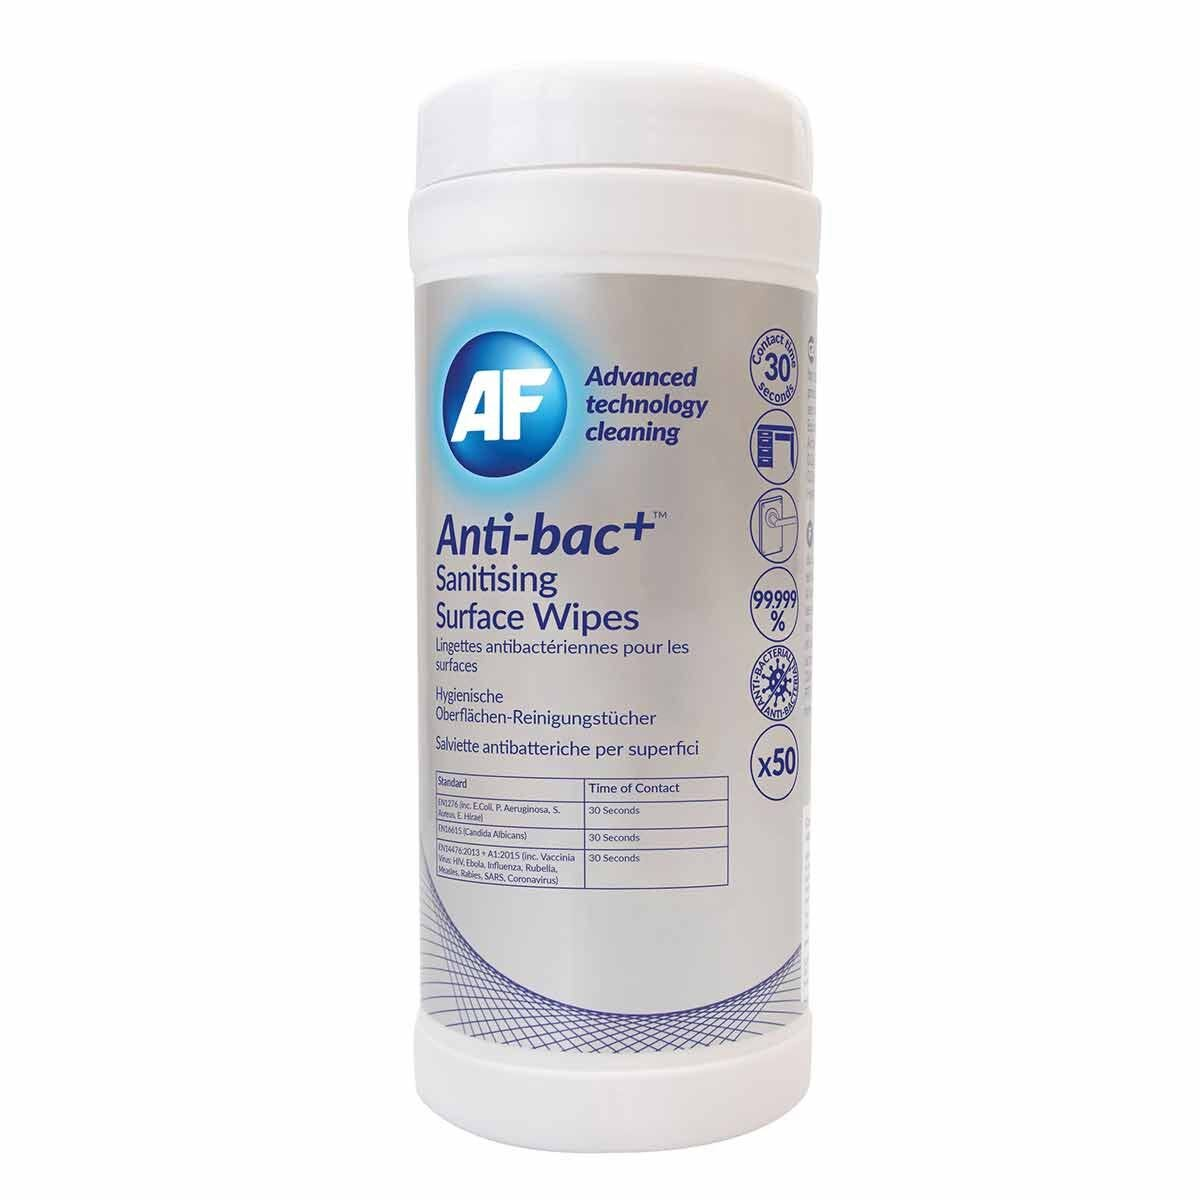 Anti-bac Plus Sanitising Surface Wipes Pack of 50